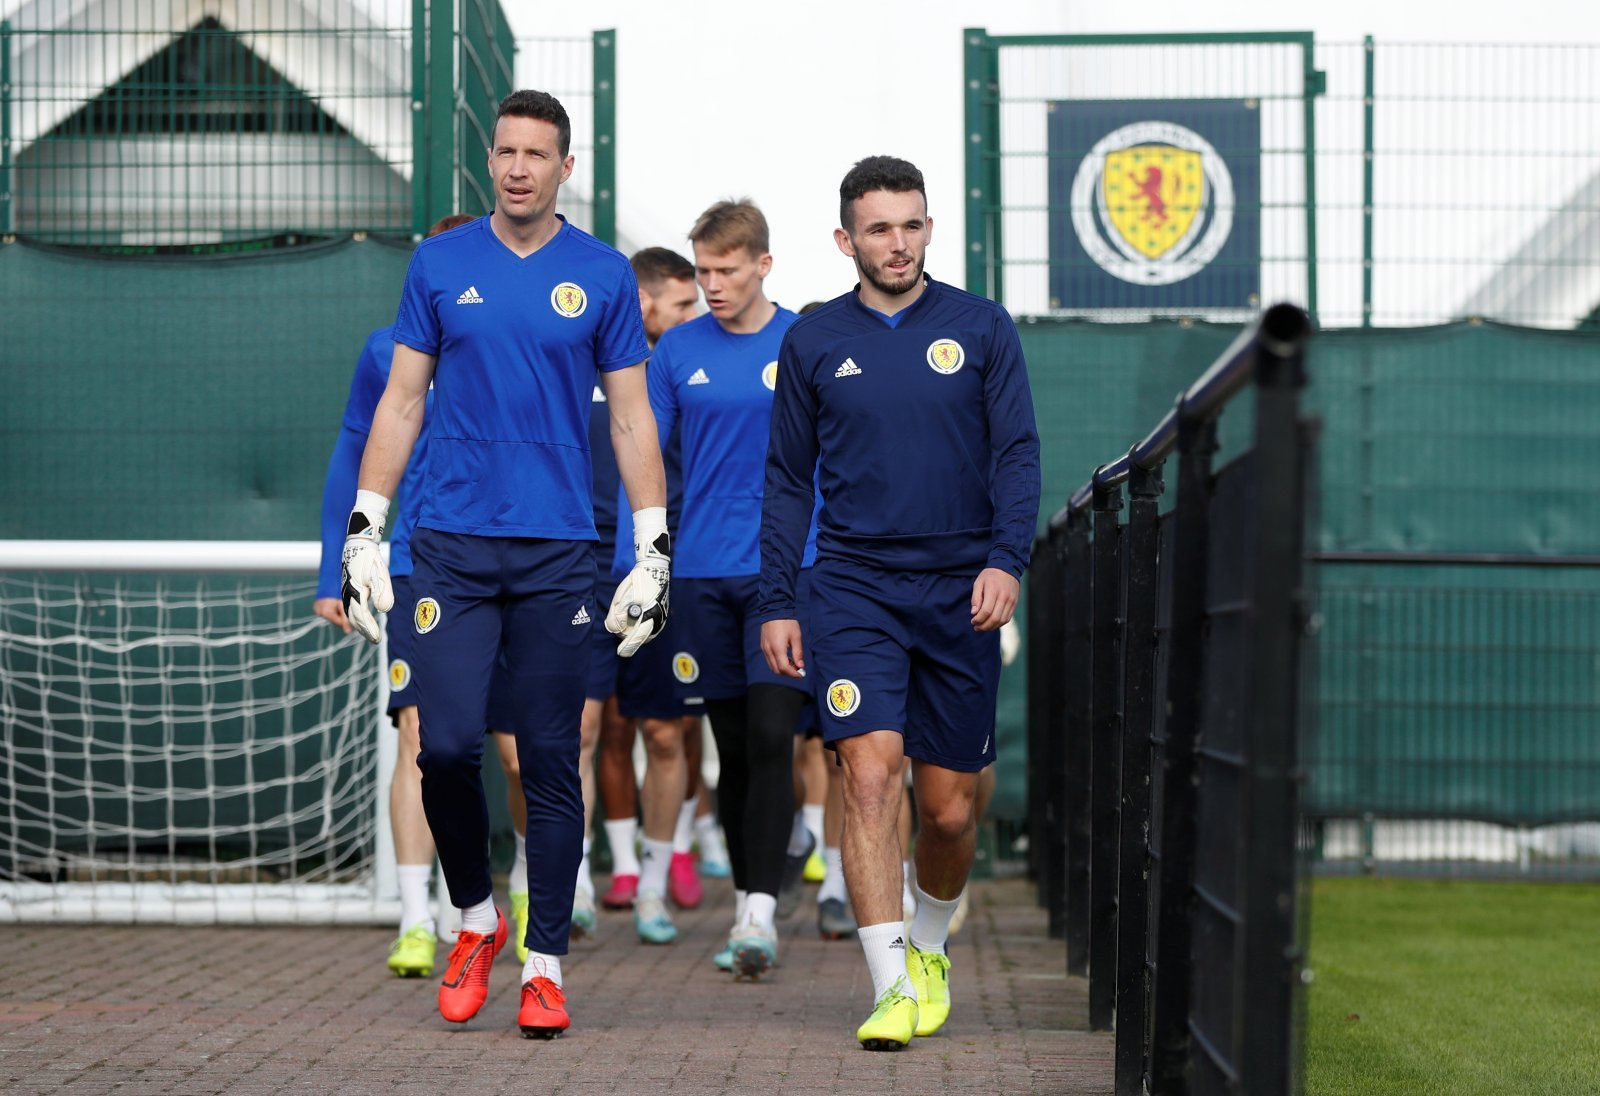 Sunderland: Many fans responded to Jon McLaughlin making his competitive Scotland debut